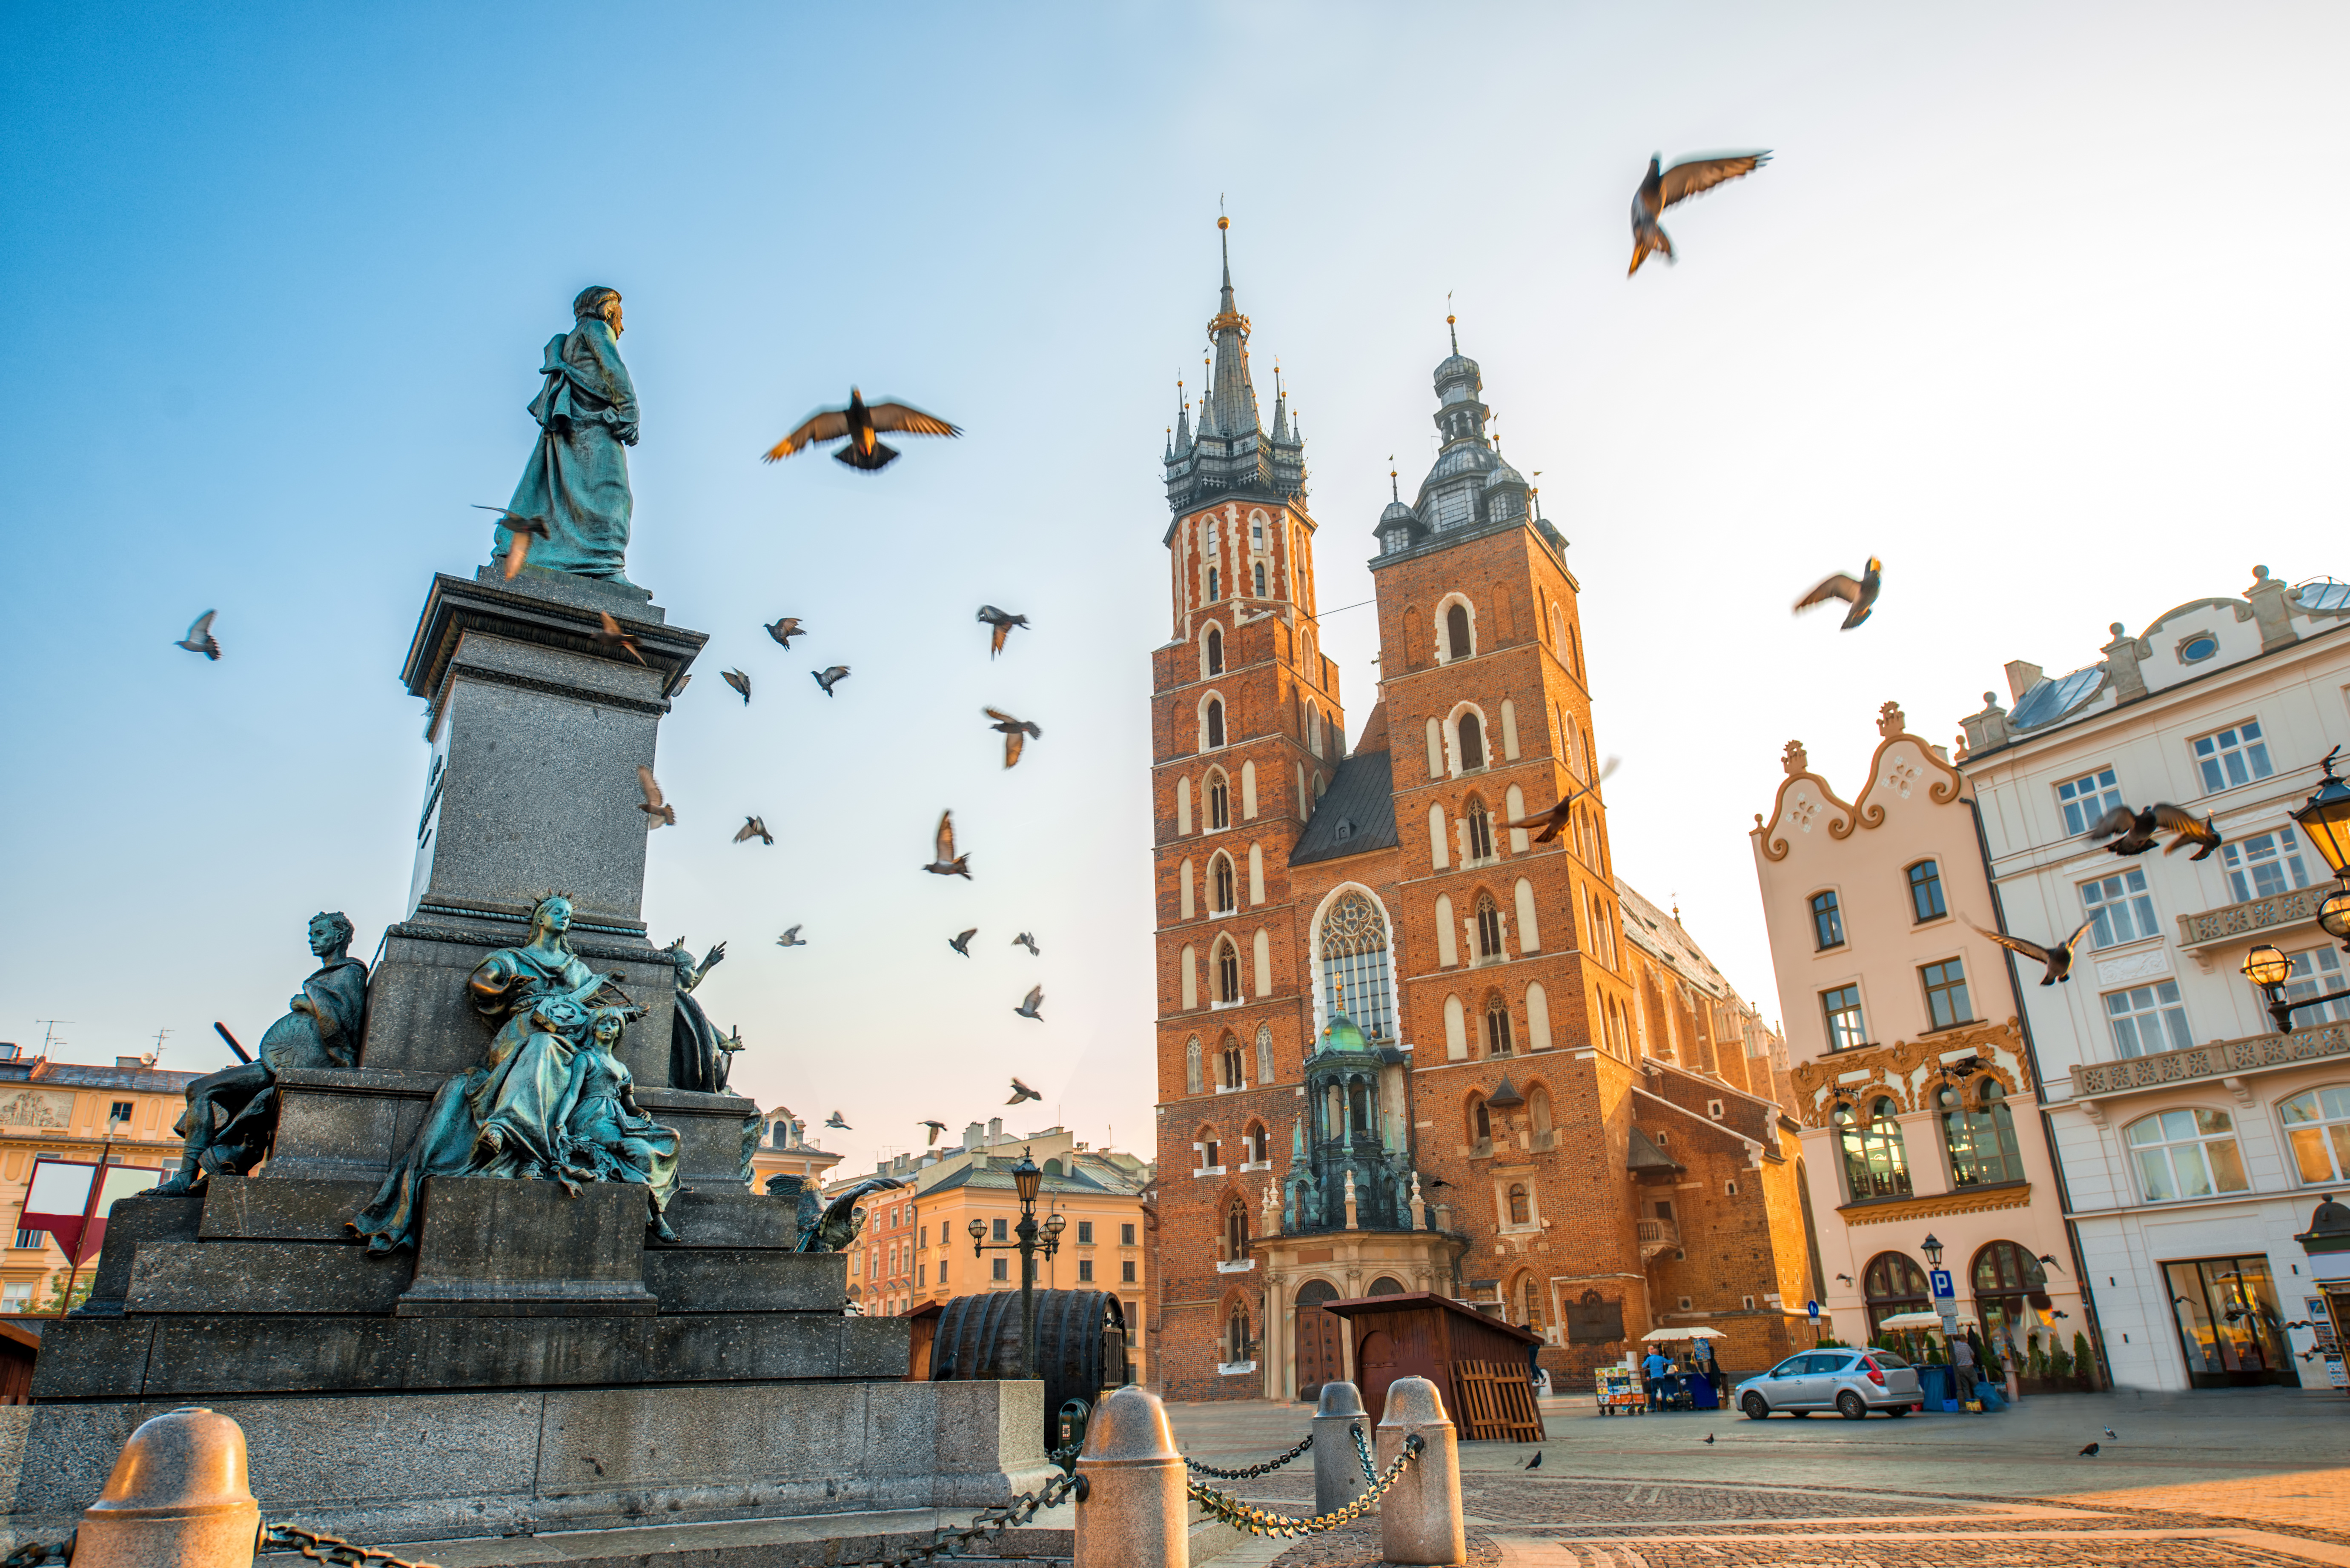 5 Things To Do When in Krakow